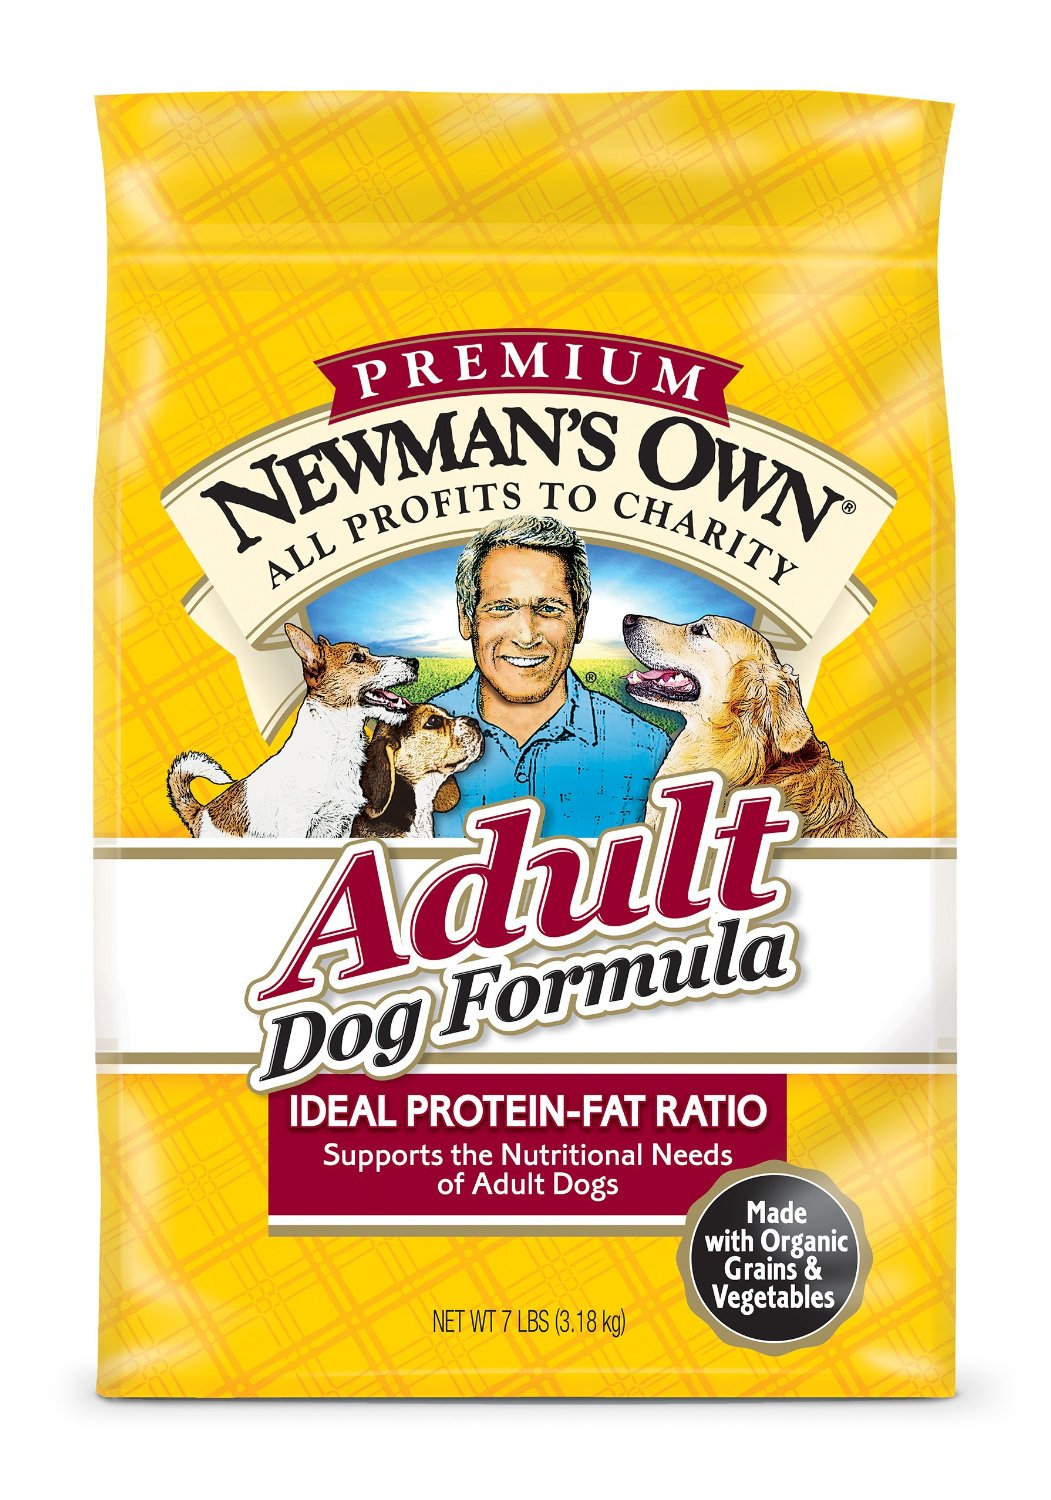 Newman's Own Organics Dry Dog Food